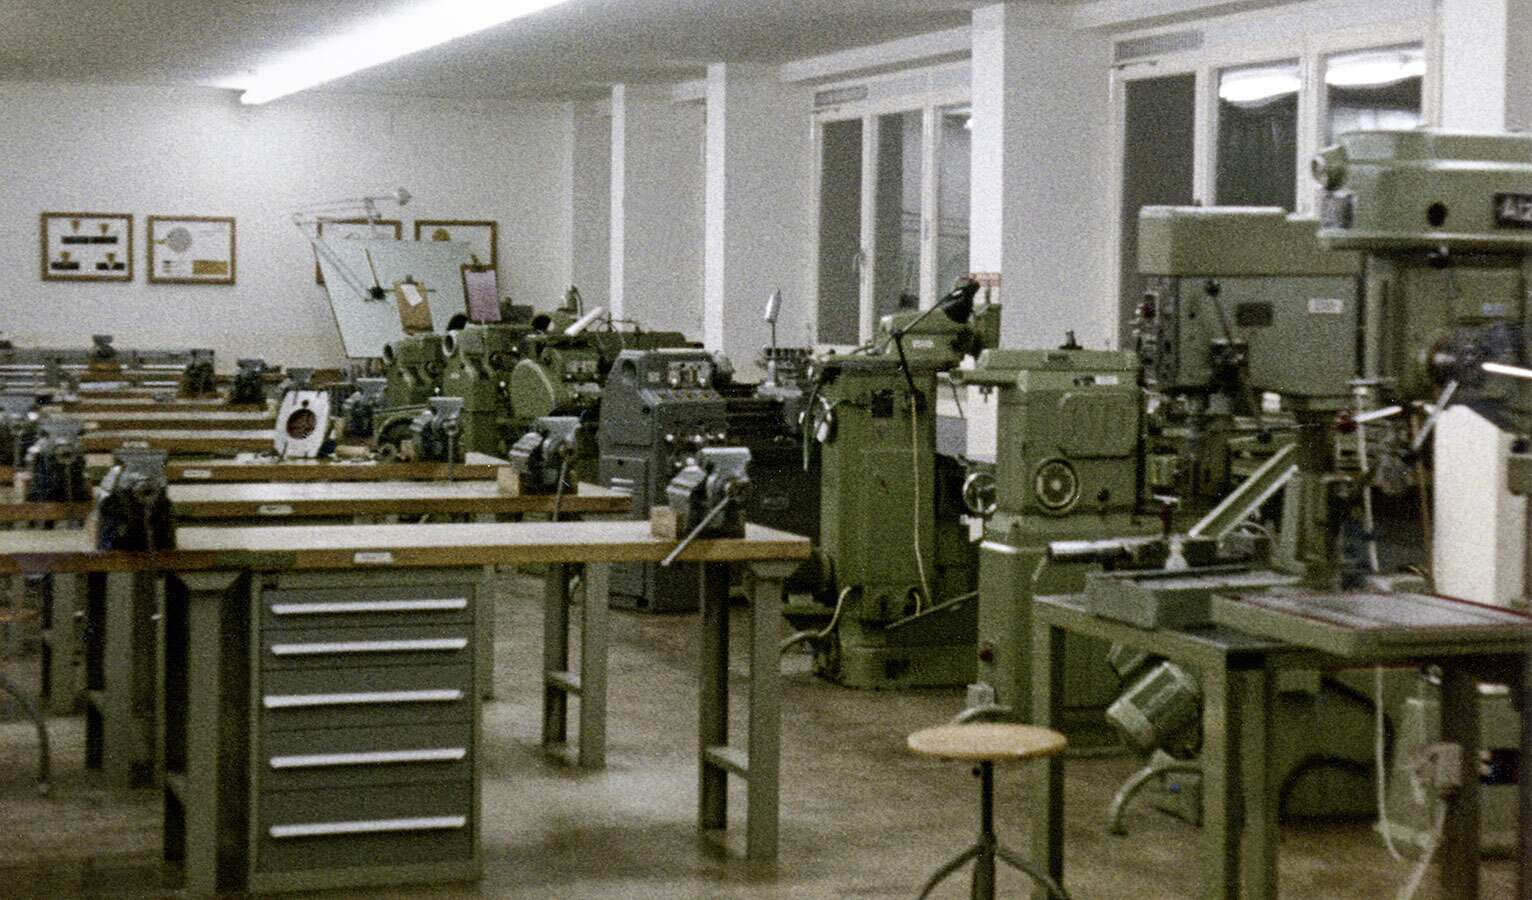 The training workshop in Rohrbach was inaugurated in 1969; there were eight trainees at that time, and today there are 121.